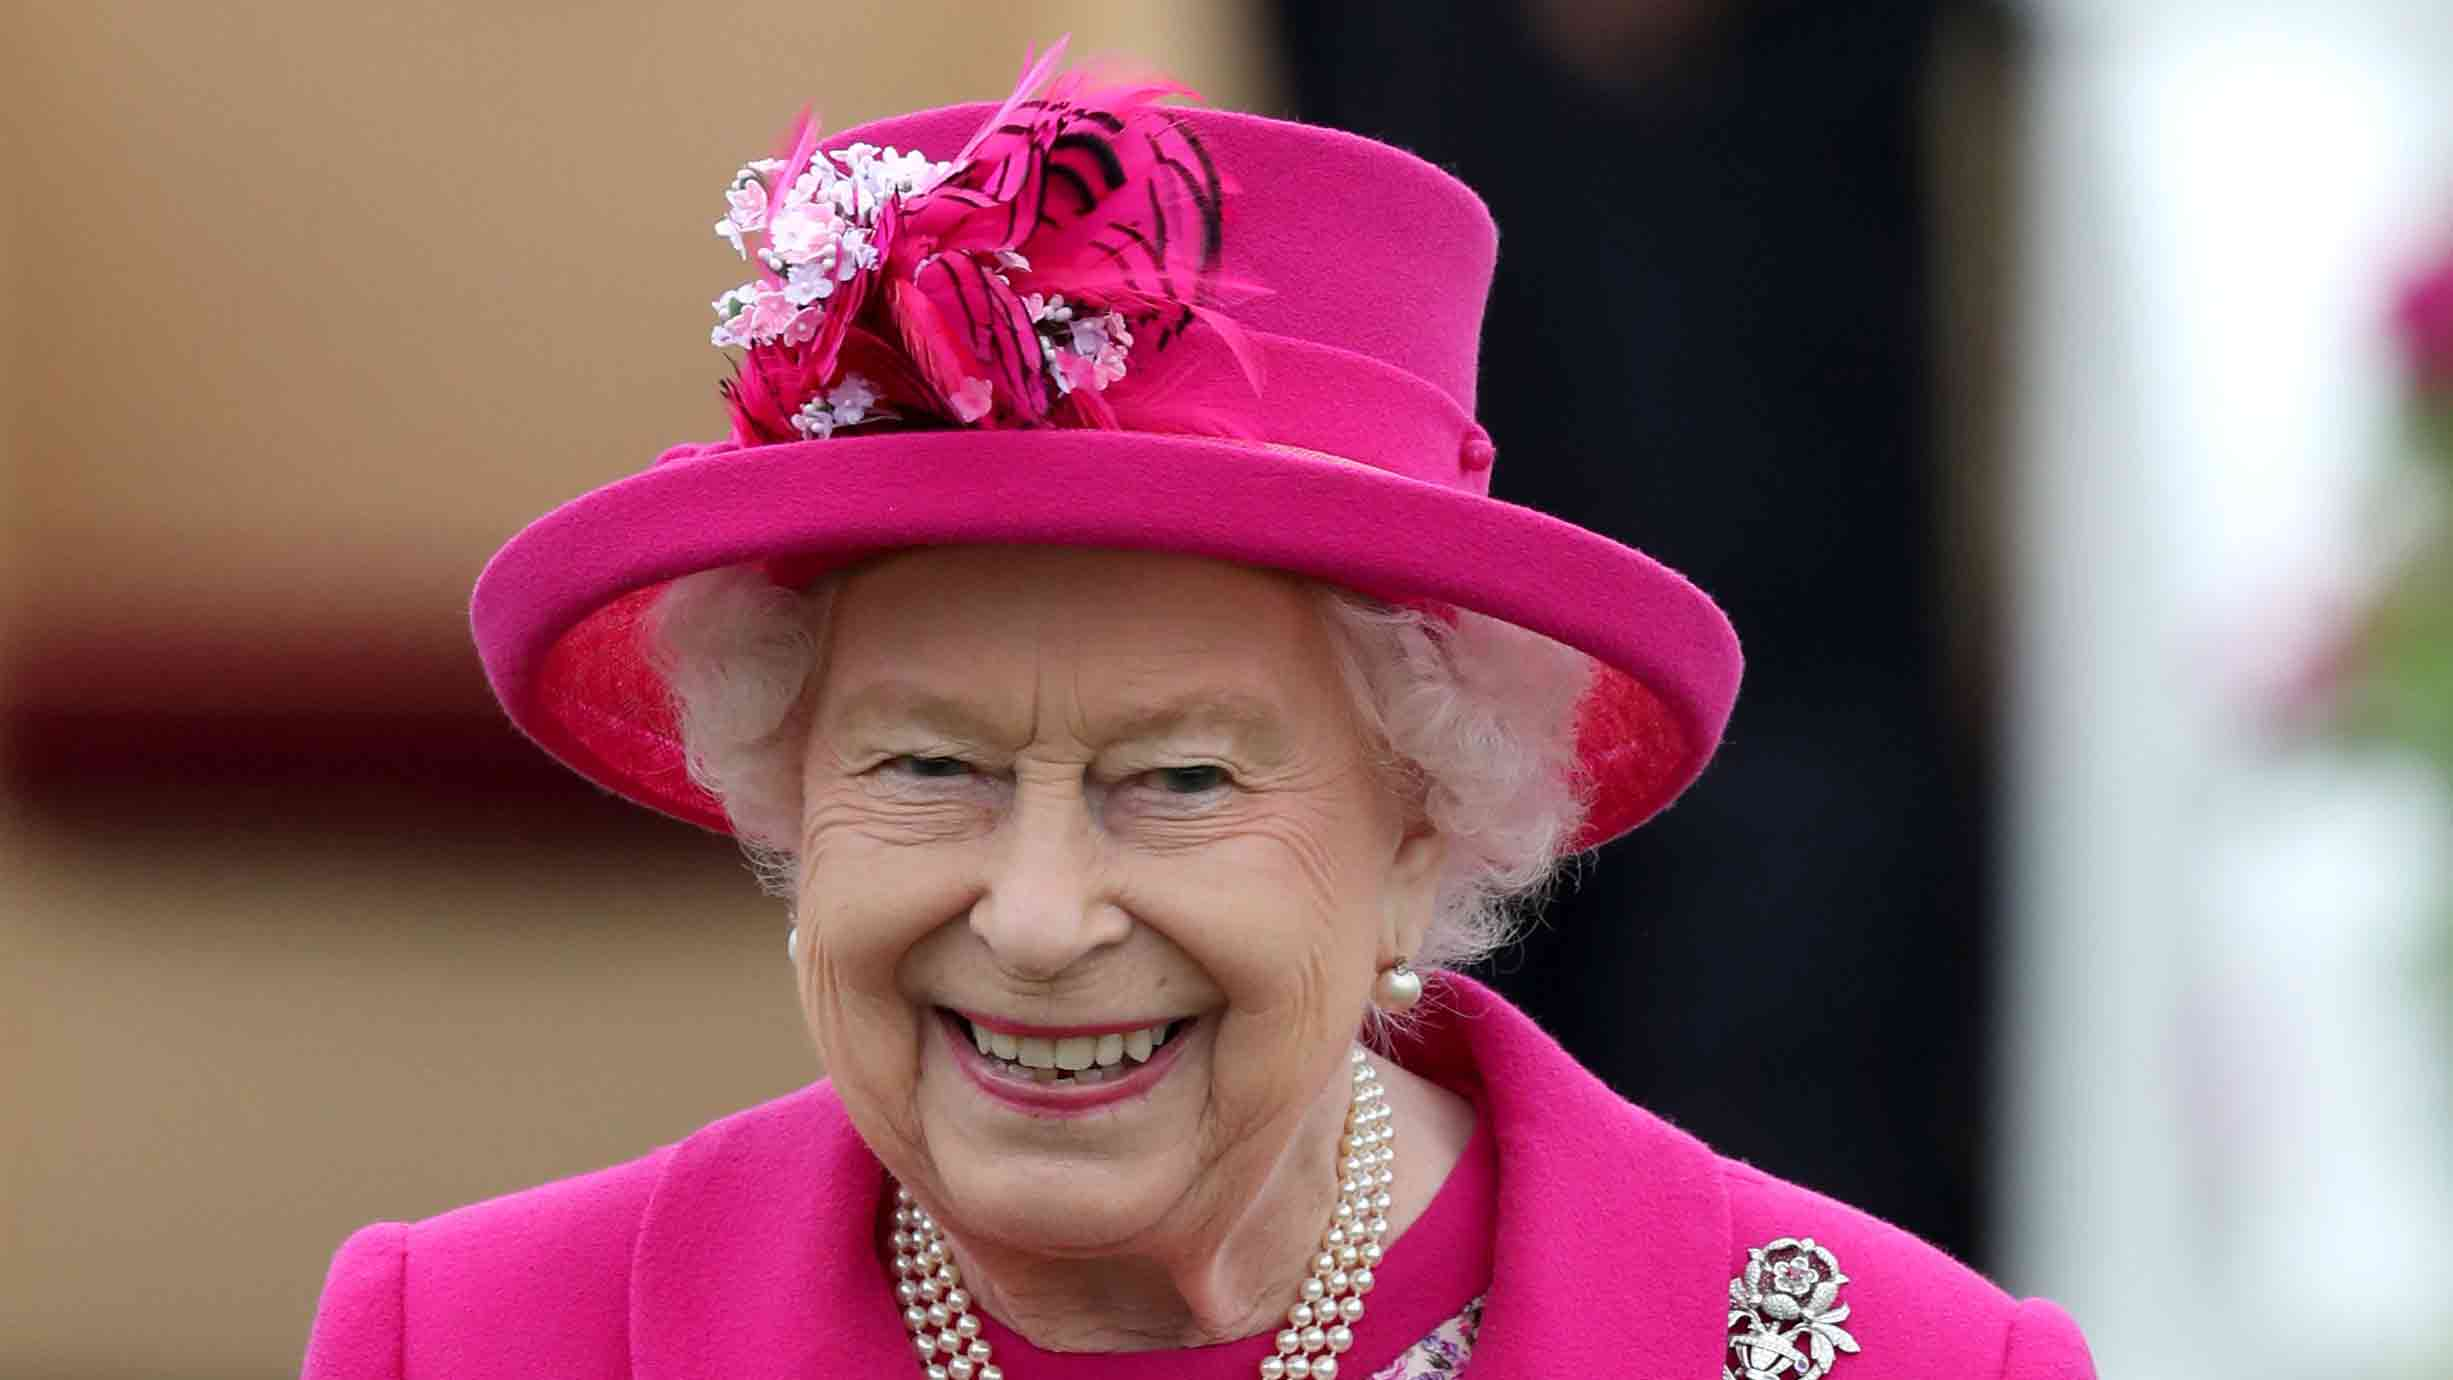 Impeccable style: Queen radiant in bold fuchsia for 6th engagement in one week